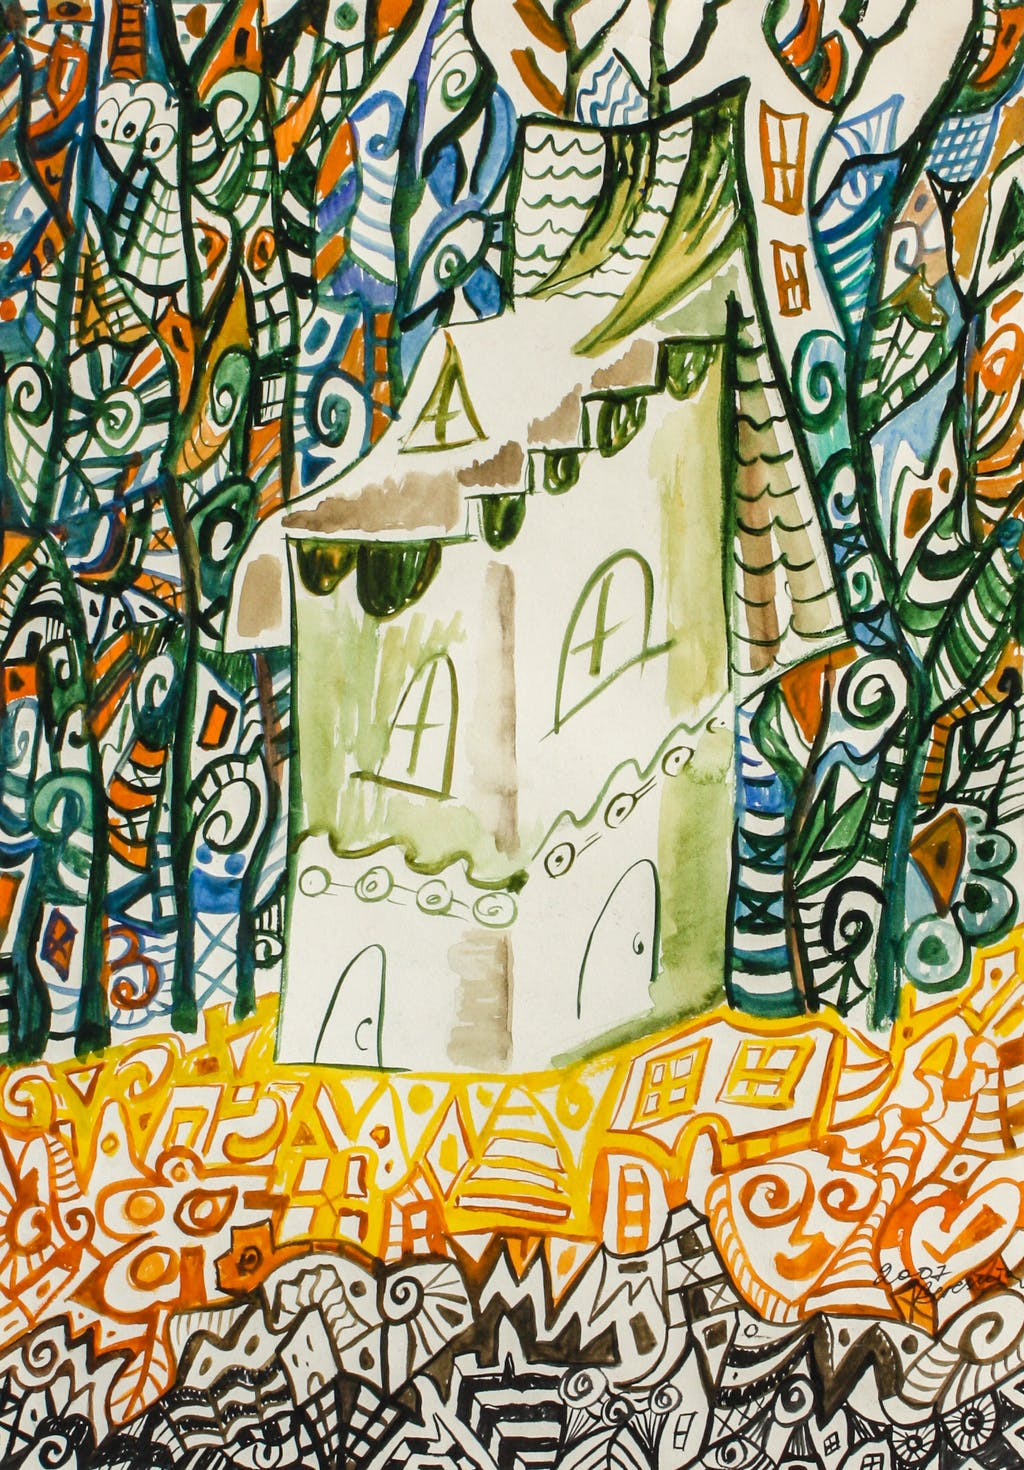 """Painting """"House, sleeping in forest"""", painted by Elena Birkenwald in 2007"""